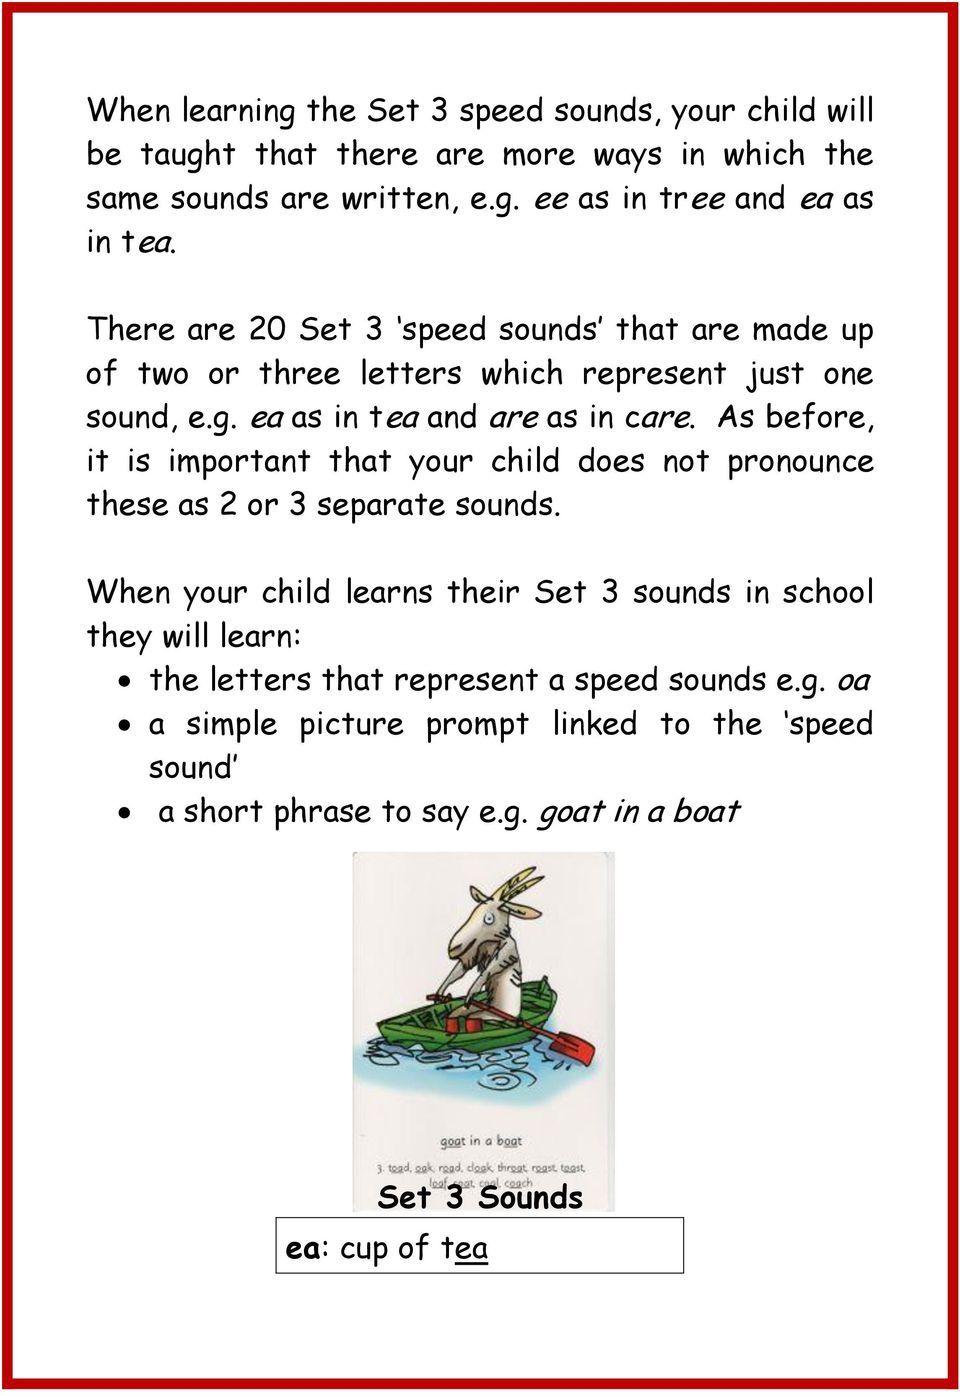 As before, it is important that your child does not pronounce these as 2 or 3 separate sounds.